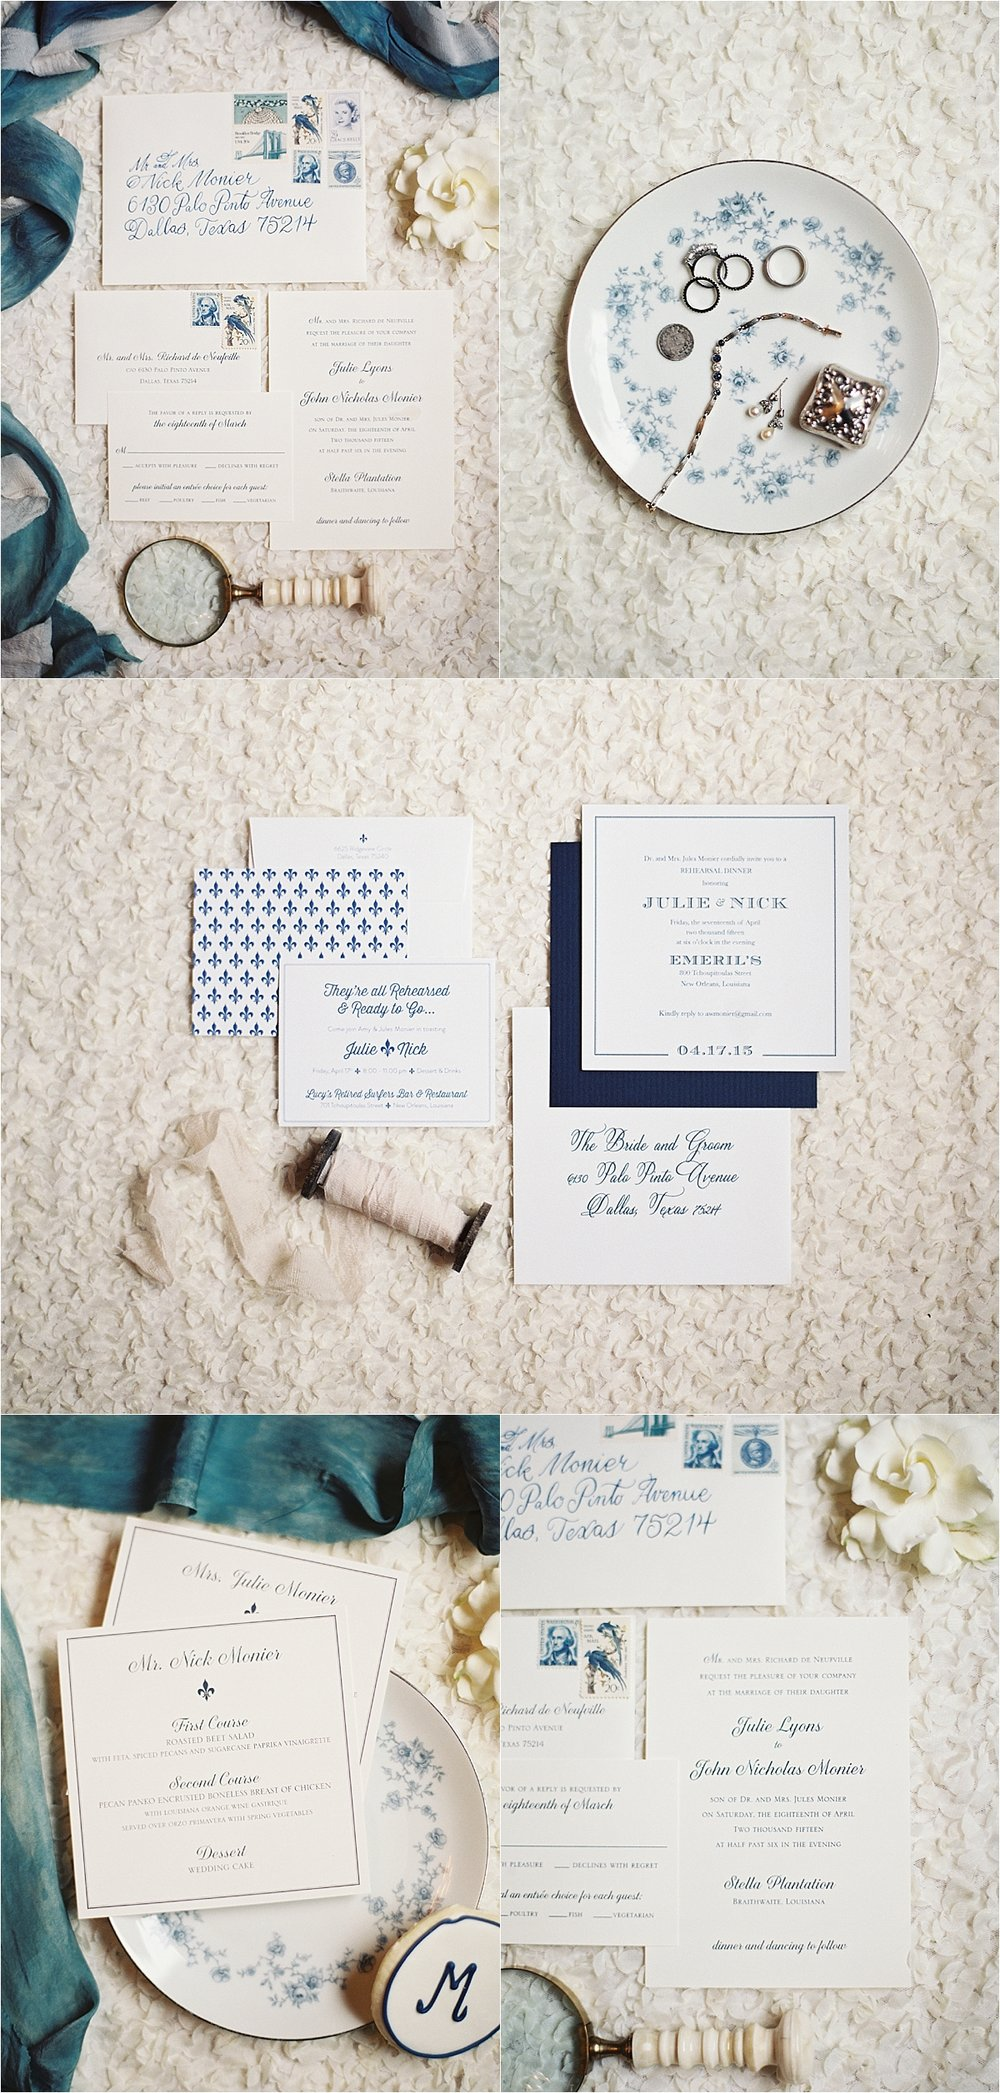 Sapphire Events | Catherine Guidry Photography | Wedding Planning | New Orleans Wedding | Stella Plantation Wedding | Blue and White Wedding | Classic Rainy Day Wedding | Outdoor Wedding | Tent Wedding | Hunter Boots | Blue and White Stationery | Blue Calligraphy | Blue and White Wedding Details